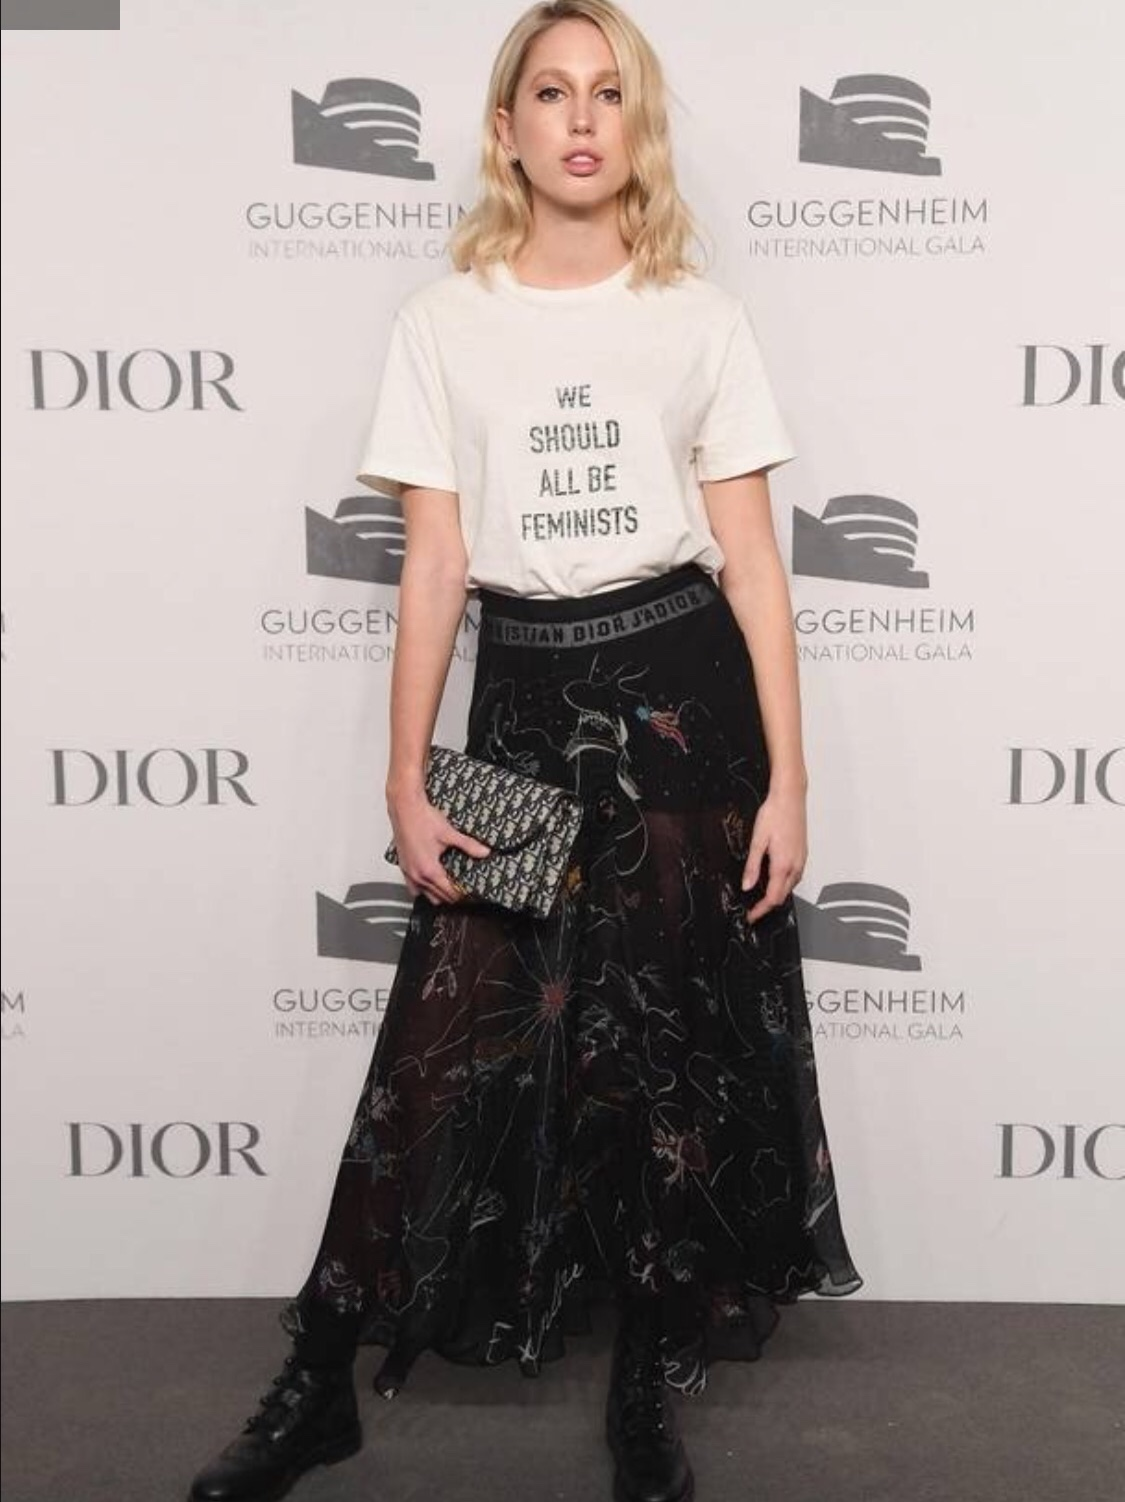 Princess Olympia of Greece at Dior's Guggenheim Gala Pre Party.jpg